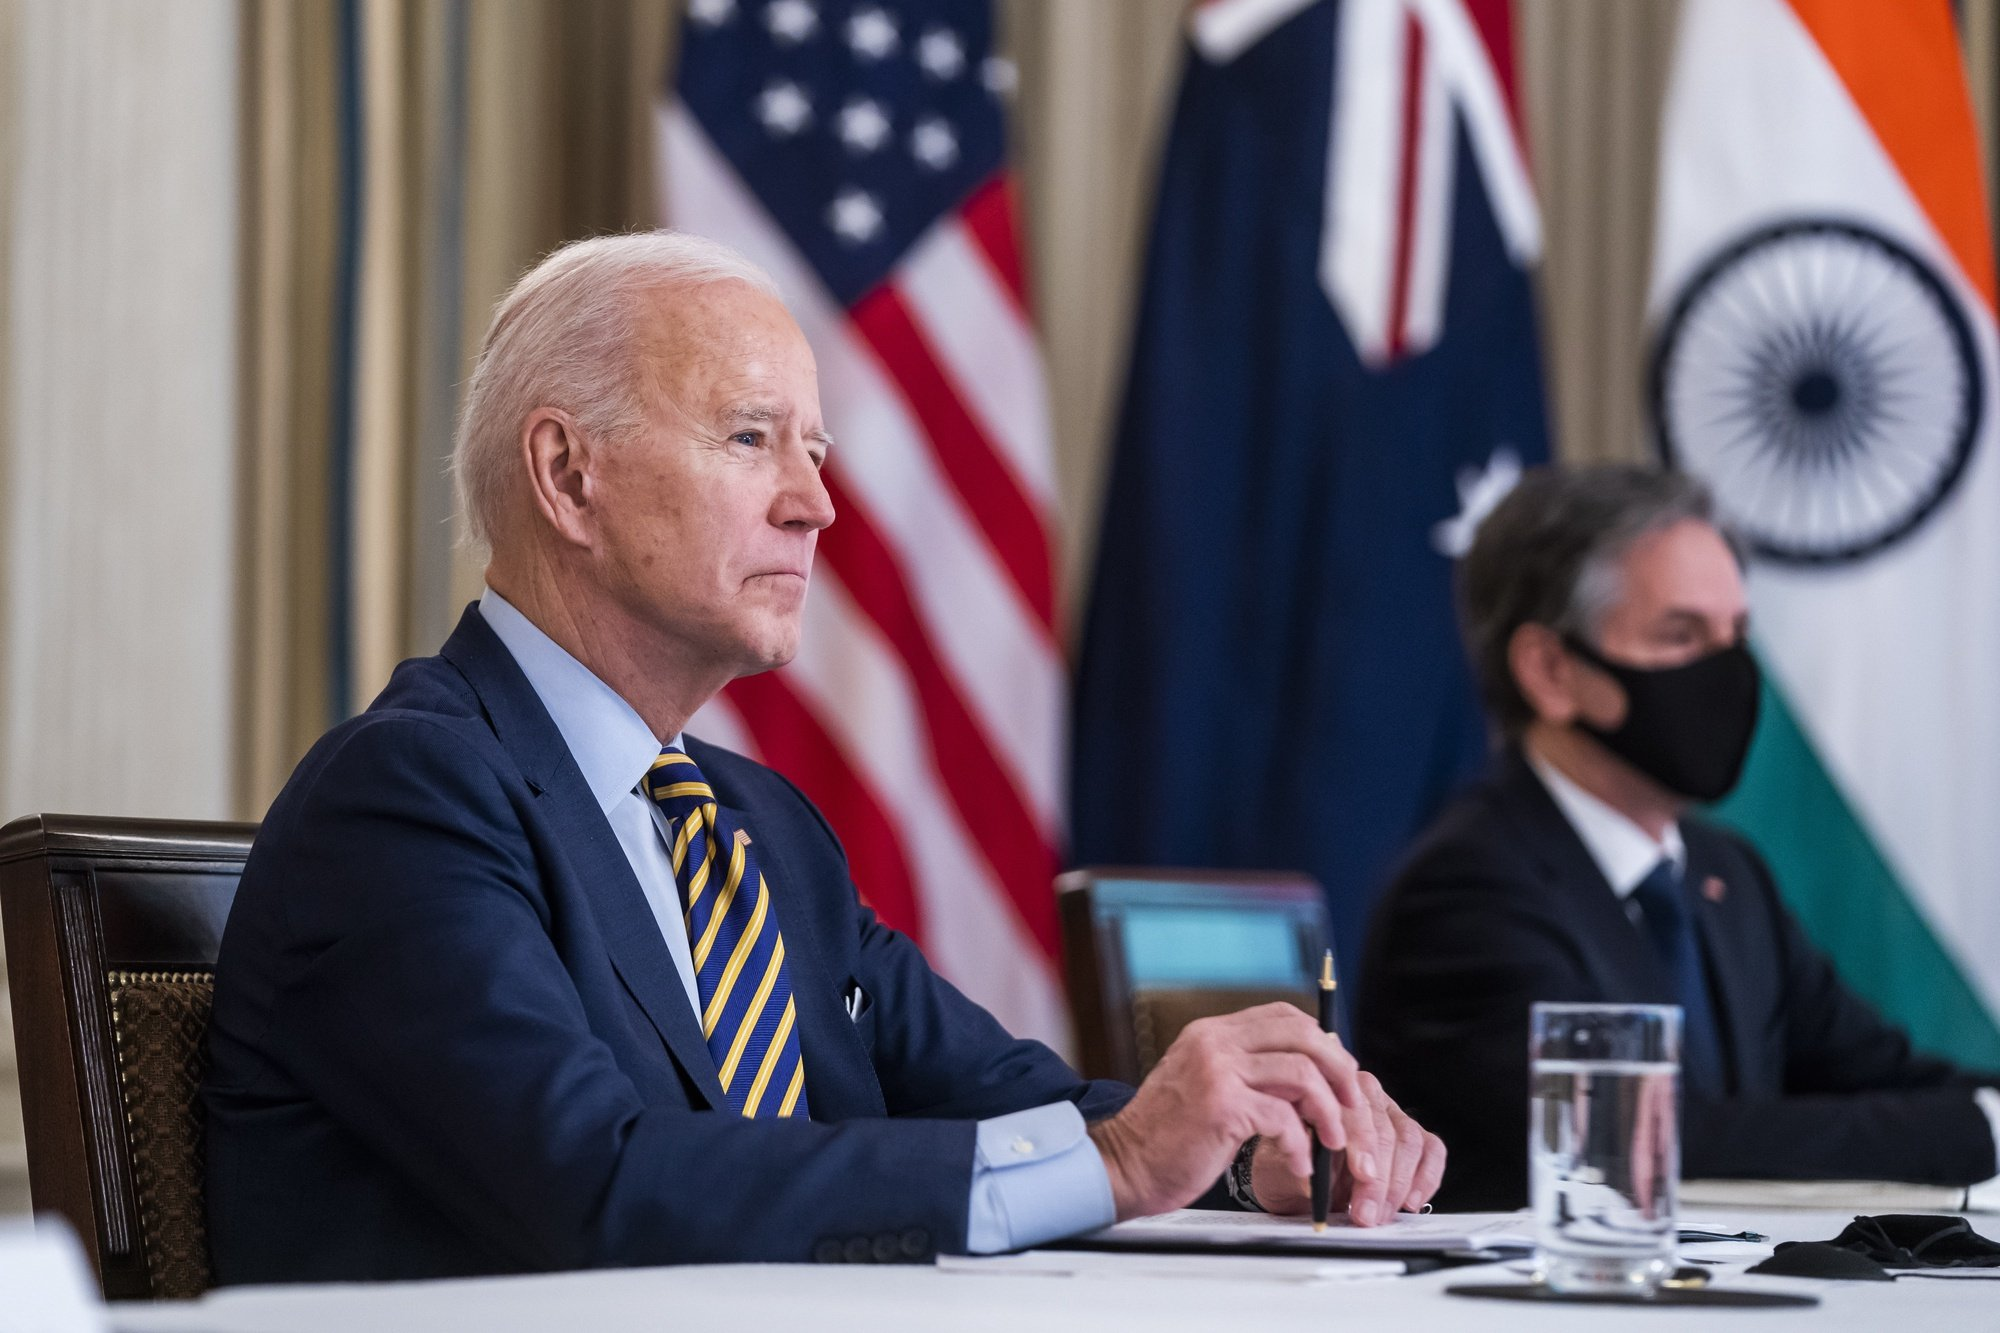 epa09069776 US President Joe Biden (L) and Secretary of State Antony Blinken (R) meet virtually with their counterparts in the 'Quad' Quadrilateral Security Dialogue: Prime Minister Narendra Modi of India, Prime Minister Scott Morrison of Australia and Prime Minister Yoshihide Suga of Japan, from the State Dining Room of the White House in Washington DC, USA, 12 March 2021.  EPA/JIM LO SCALZO